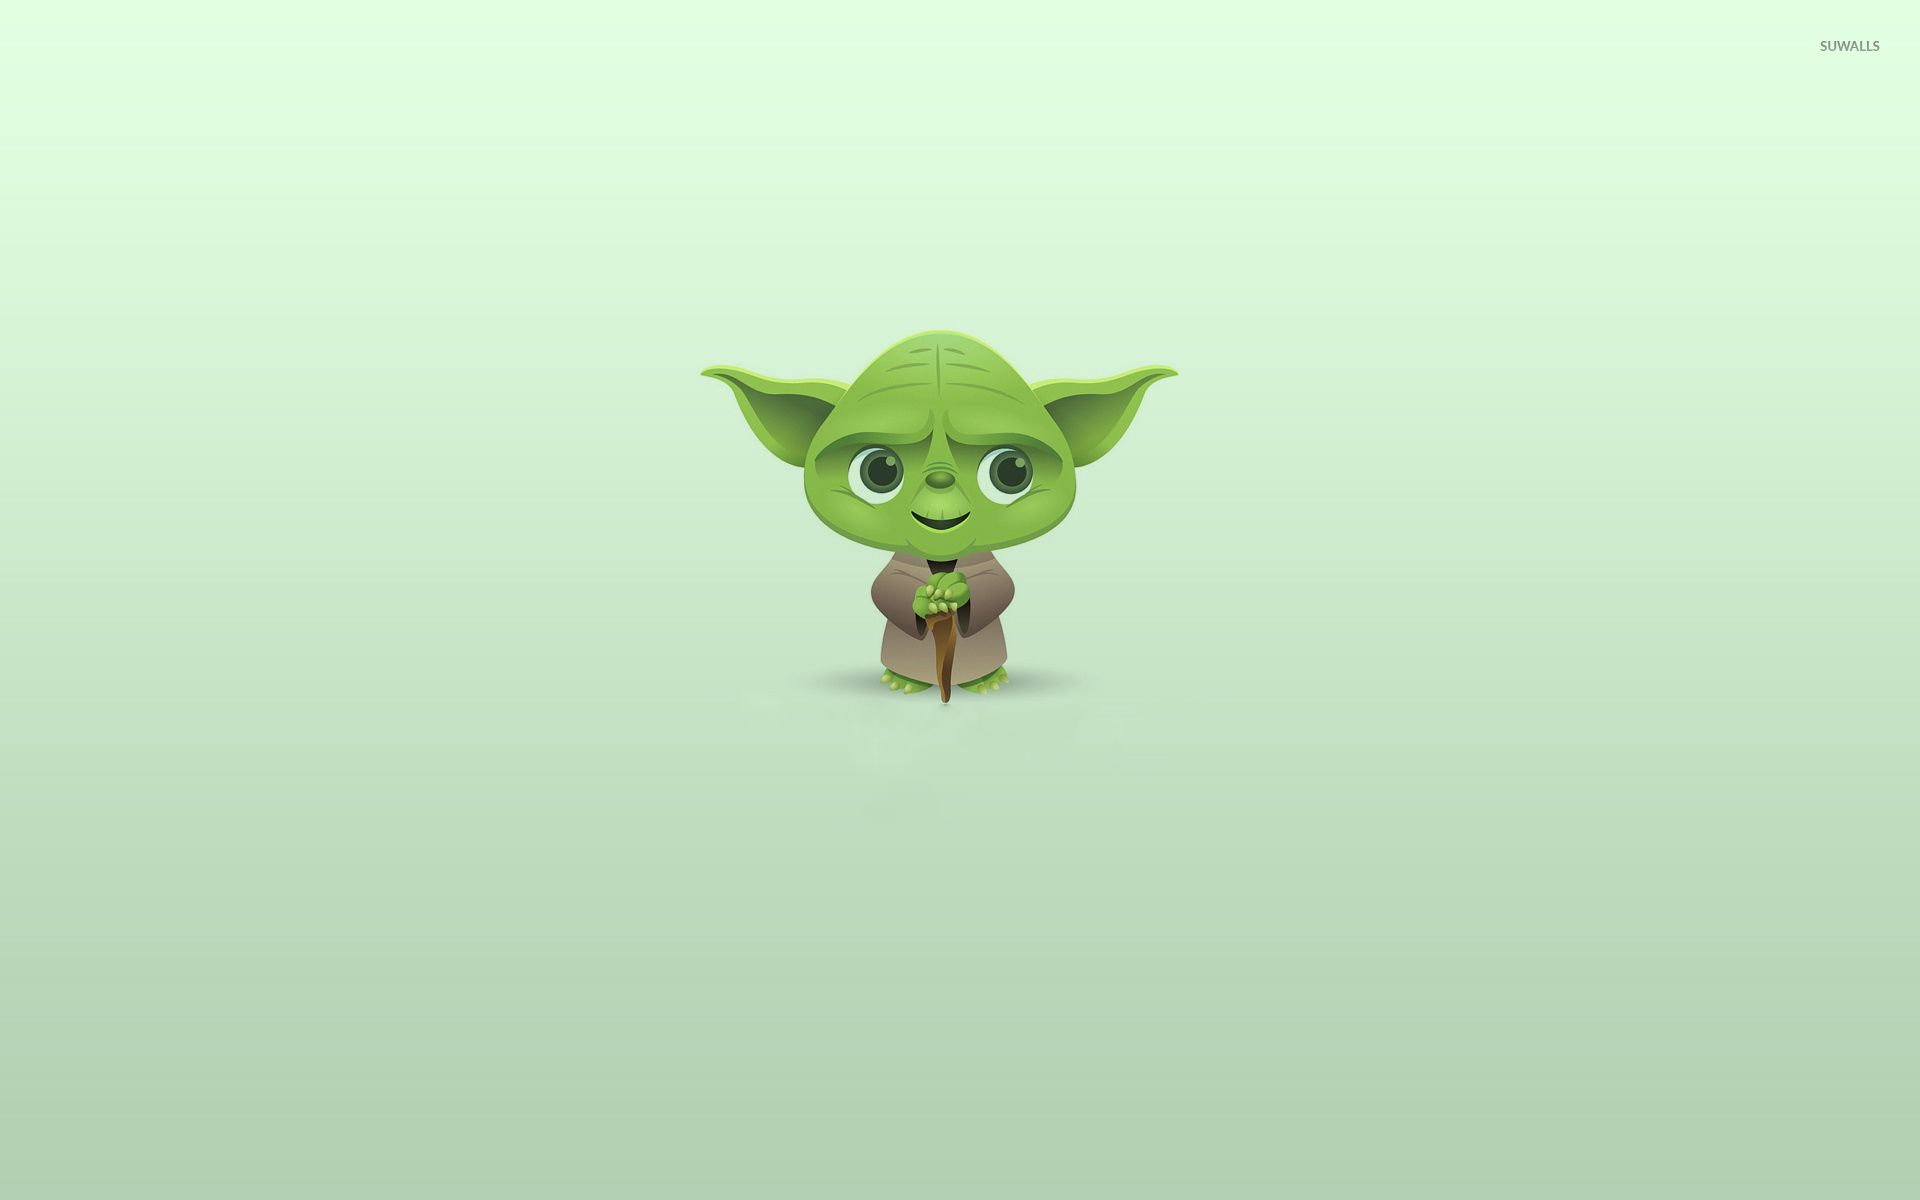 Cute Star Wars Wallpapers Top Free Cute Star Wars Backgrounds Wallpaperaccess